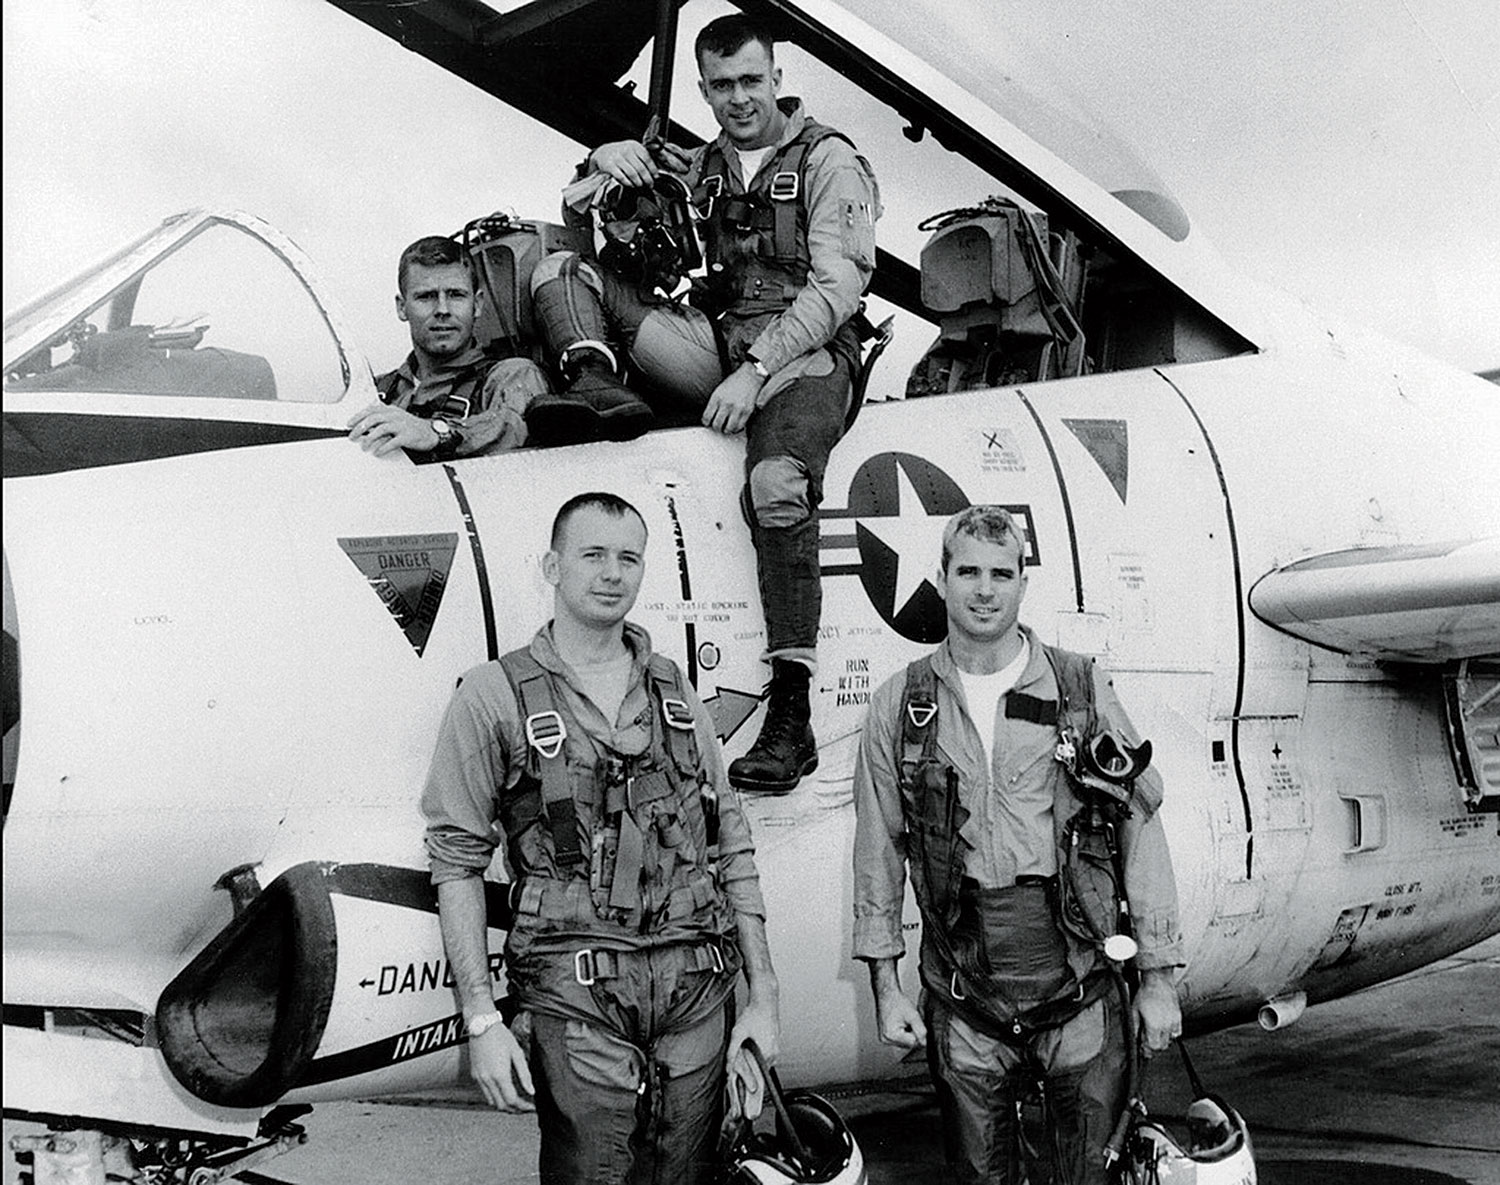 with Navy buddies in 1965